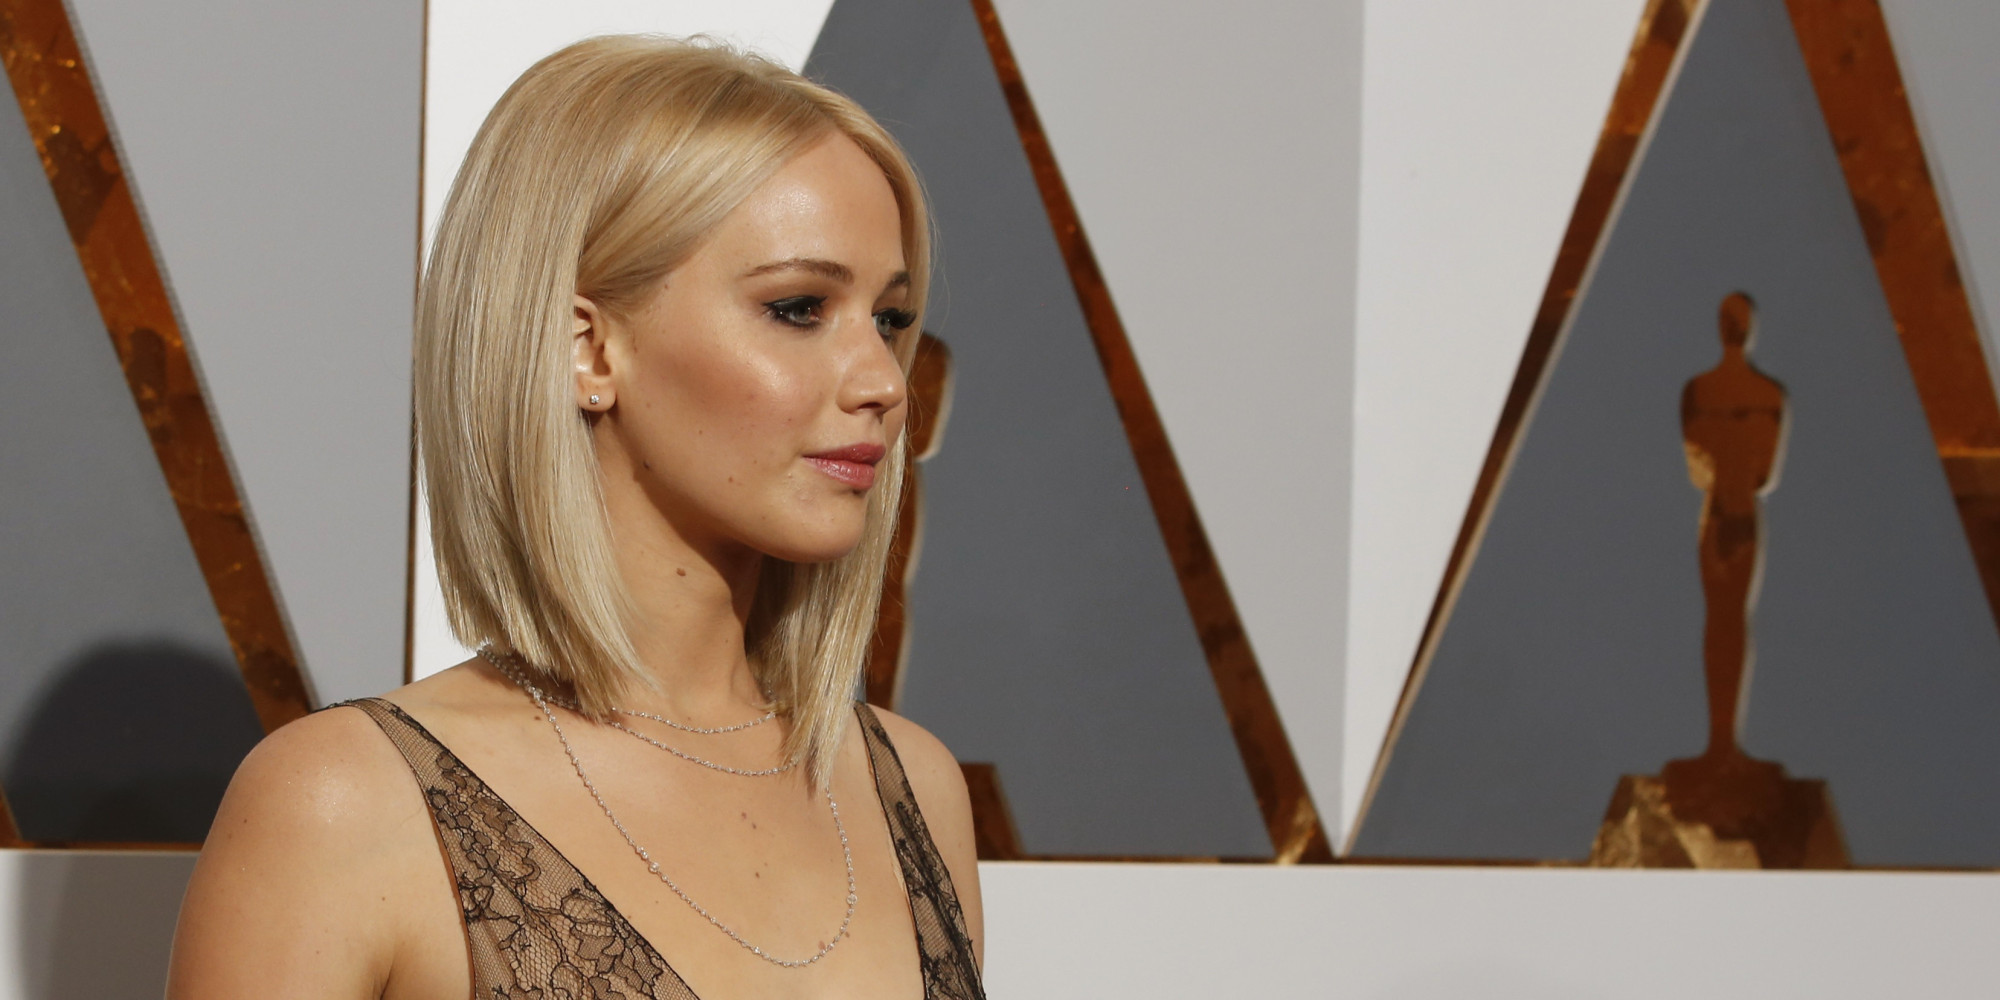 Le hacker qui a vol les photos nues de jennifer lawrence - Les simpson tout nu ...